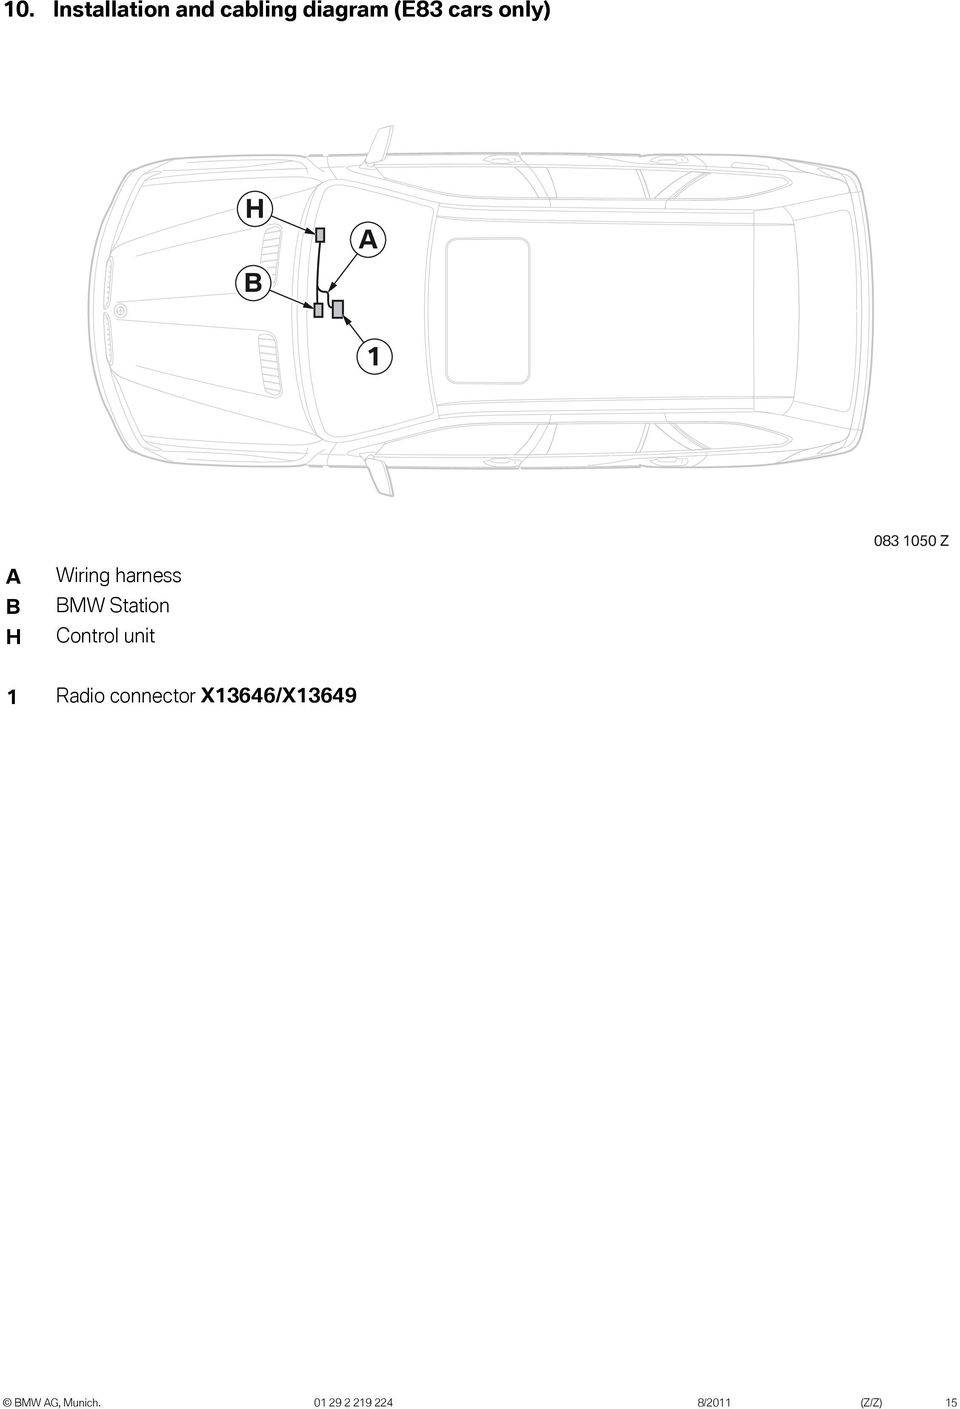 Original Bmw Accessories Installation Instructions Pdf Stereo Wire Harness Mini Cooper 06 2006 Car Radio Wiring Station Control